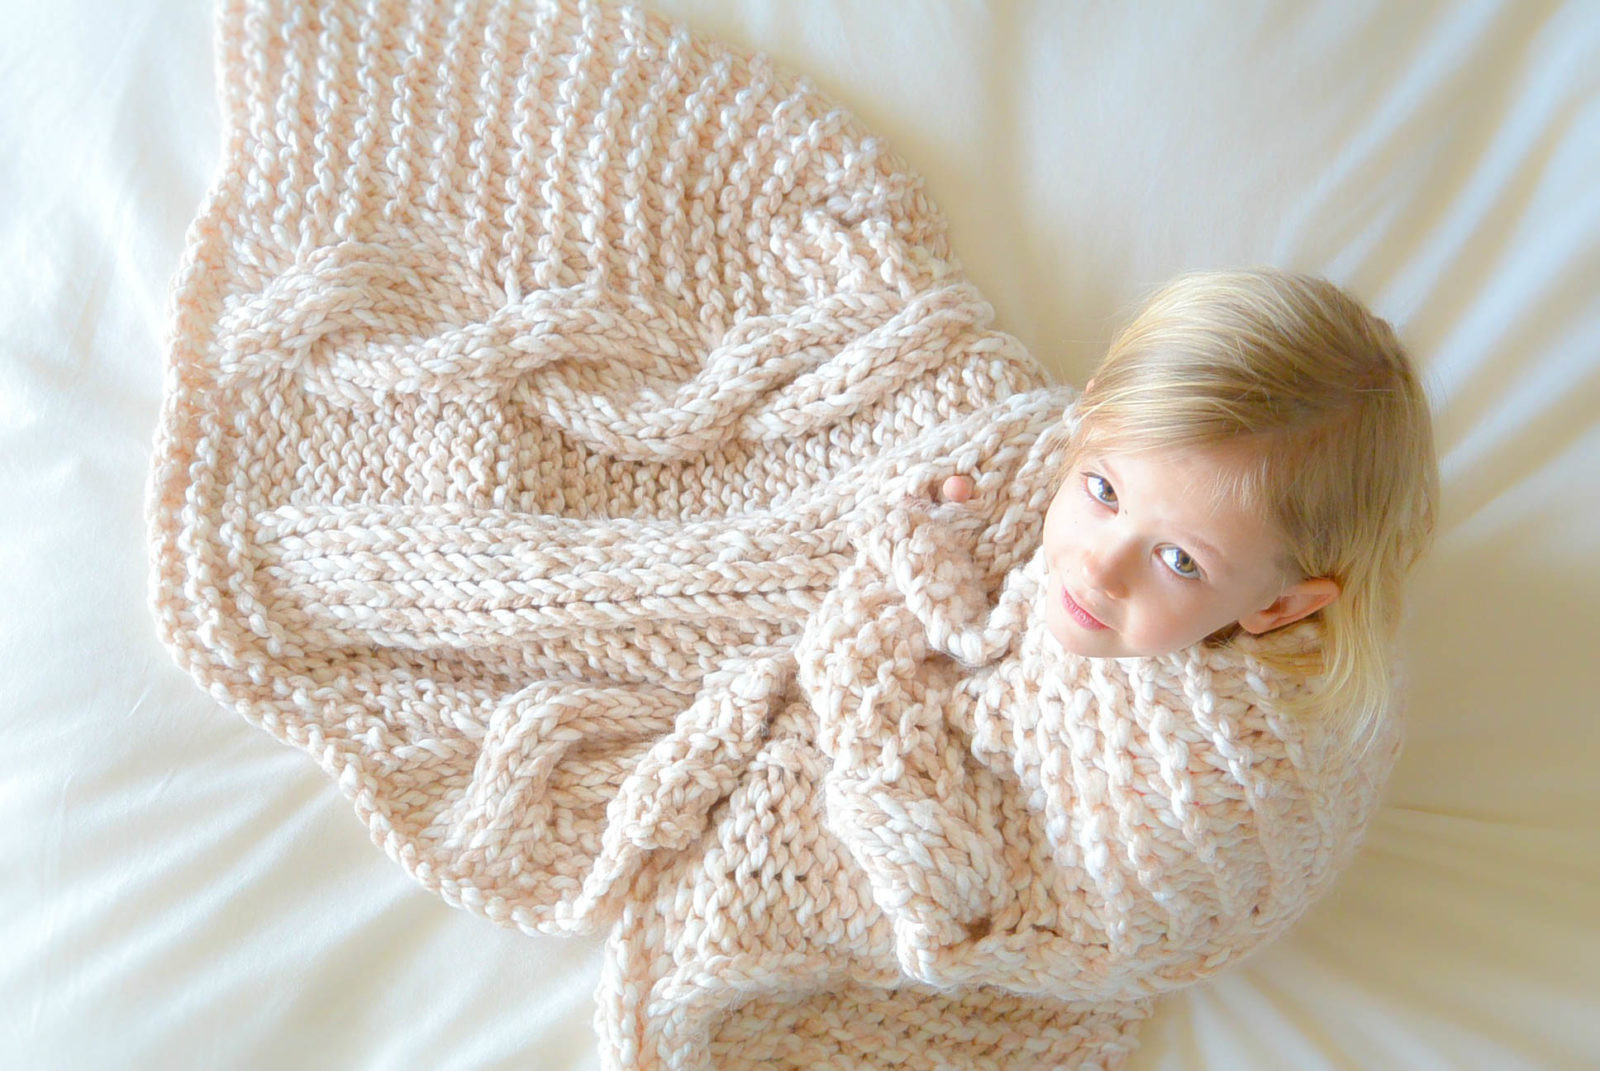 Knitted Throw Awesome Endless Cables Chunky Knit Throw Pattern – Mama In A Stitch Of Wonderful 48 Images Knitted Throw